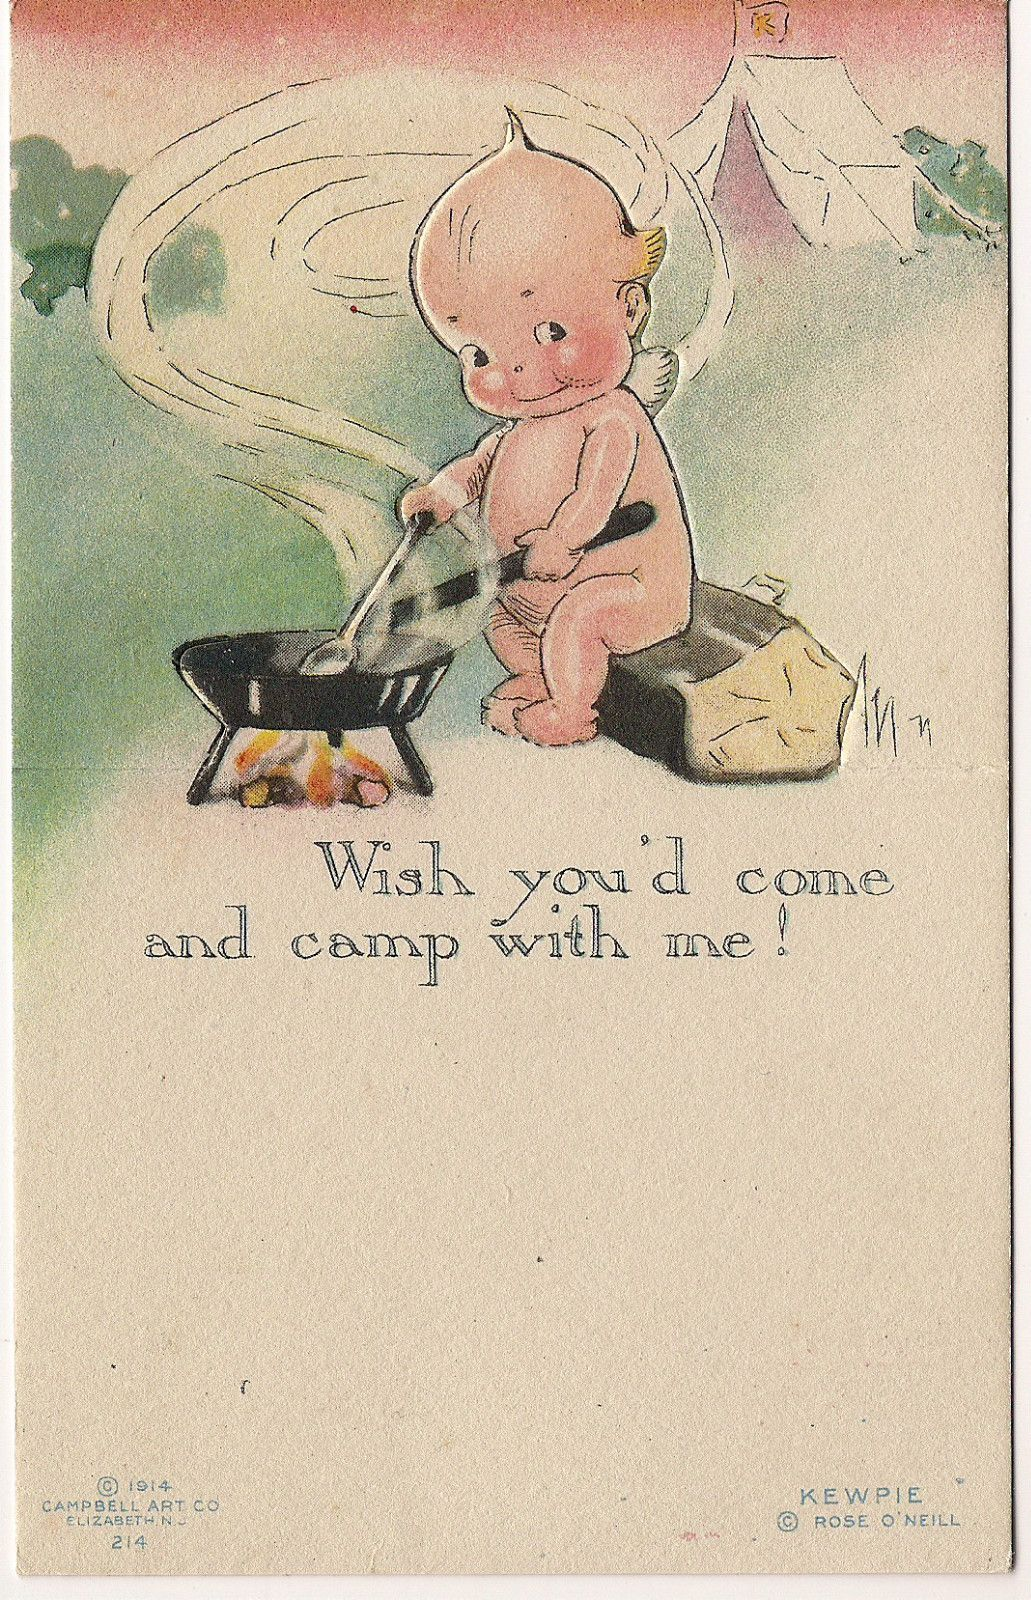 Rose O'Neill Kewpie at Camp Fire 1914 Klever Kard Postcard | eBay